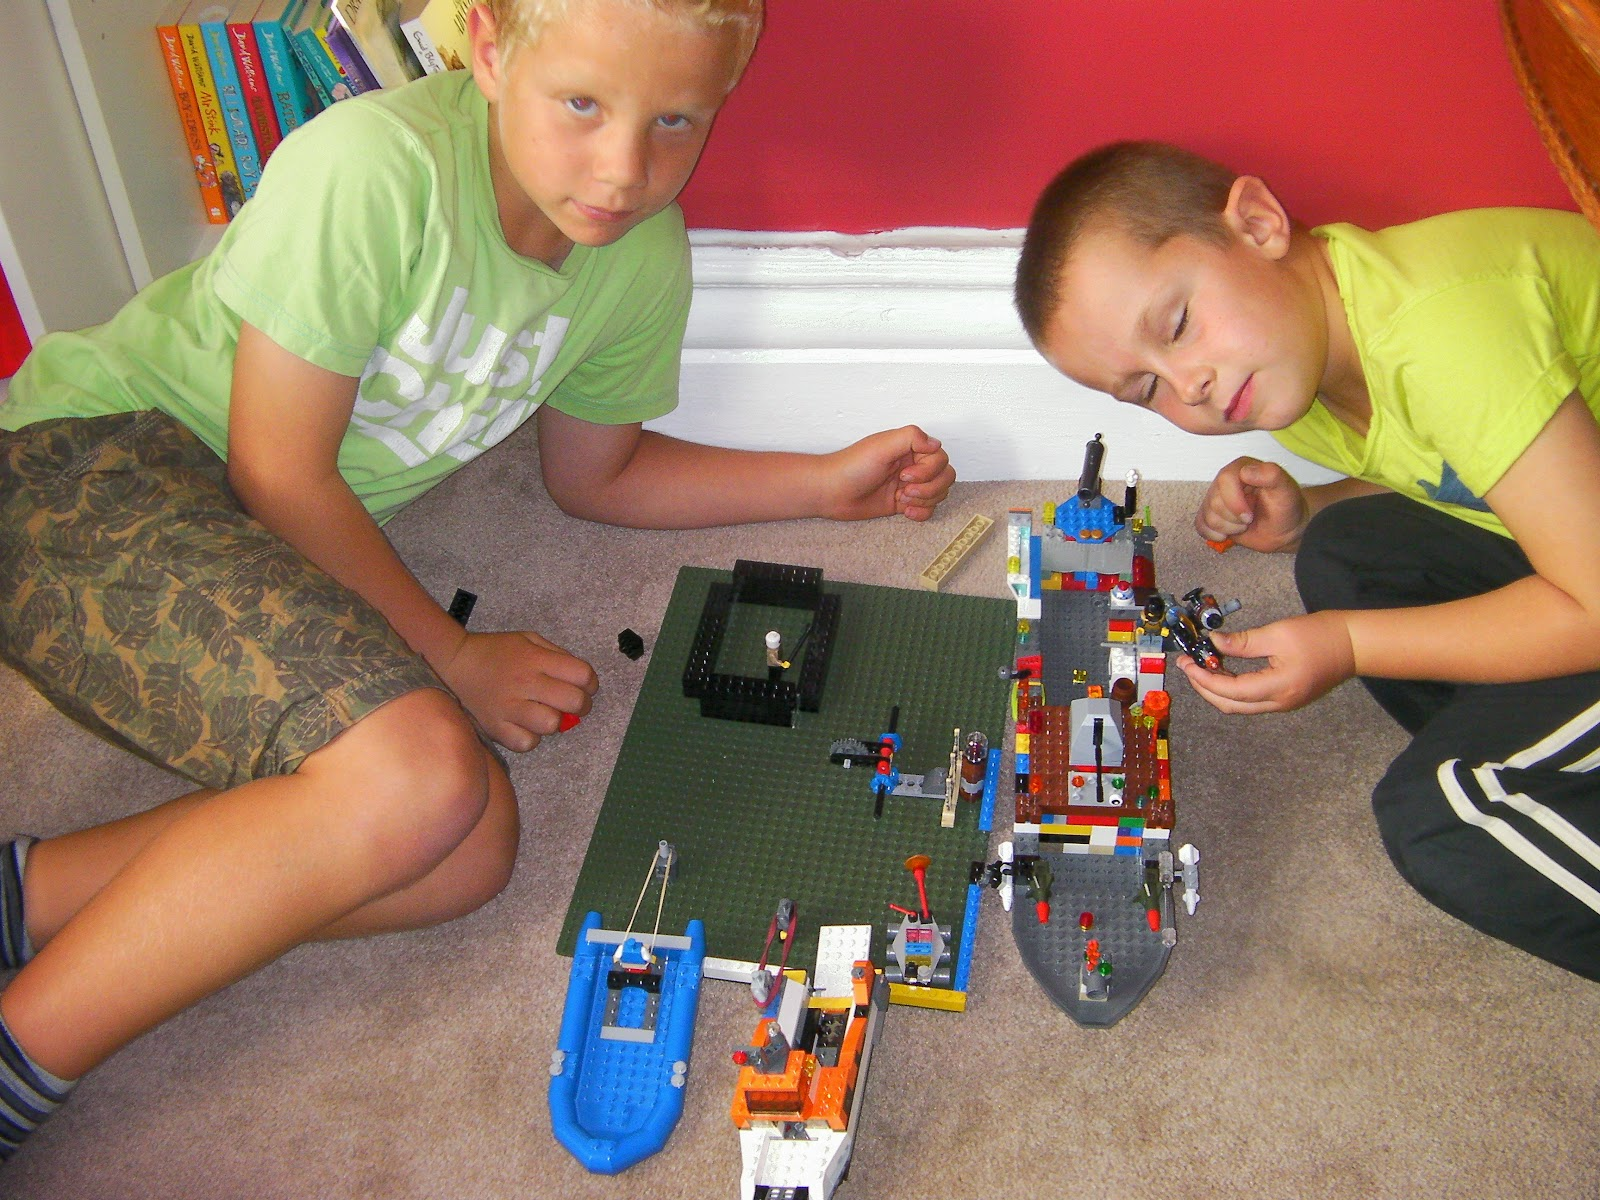 lego docks with police boat and rocket launchers